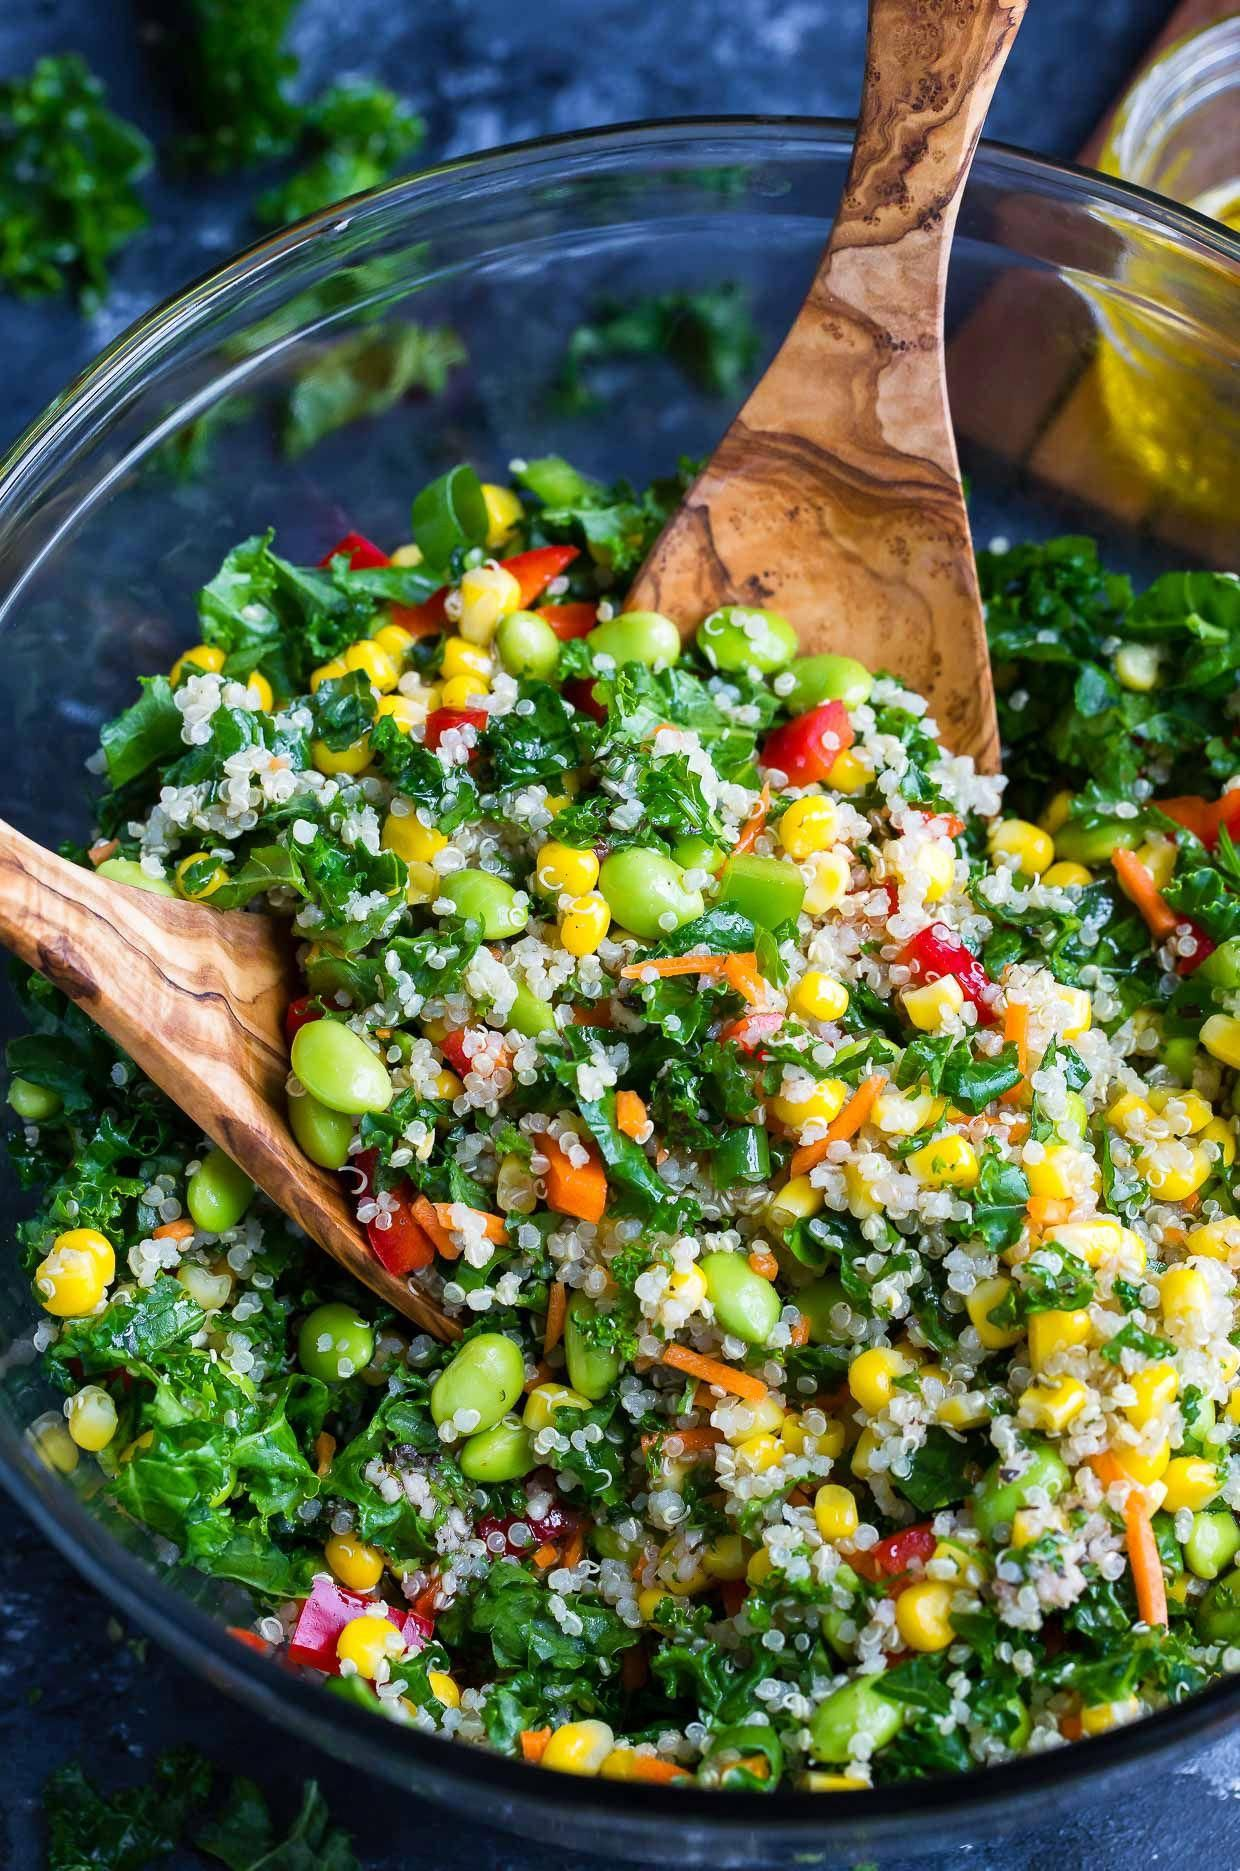 Obeisant Fantastic Whole 30 Recipes With Ground Beef Recipesbook Pastarecipesfordinner Healthy Salad Recipes Superfood Salad Quinoa Healthy